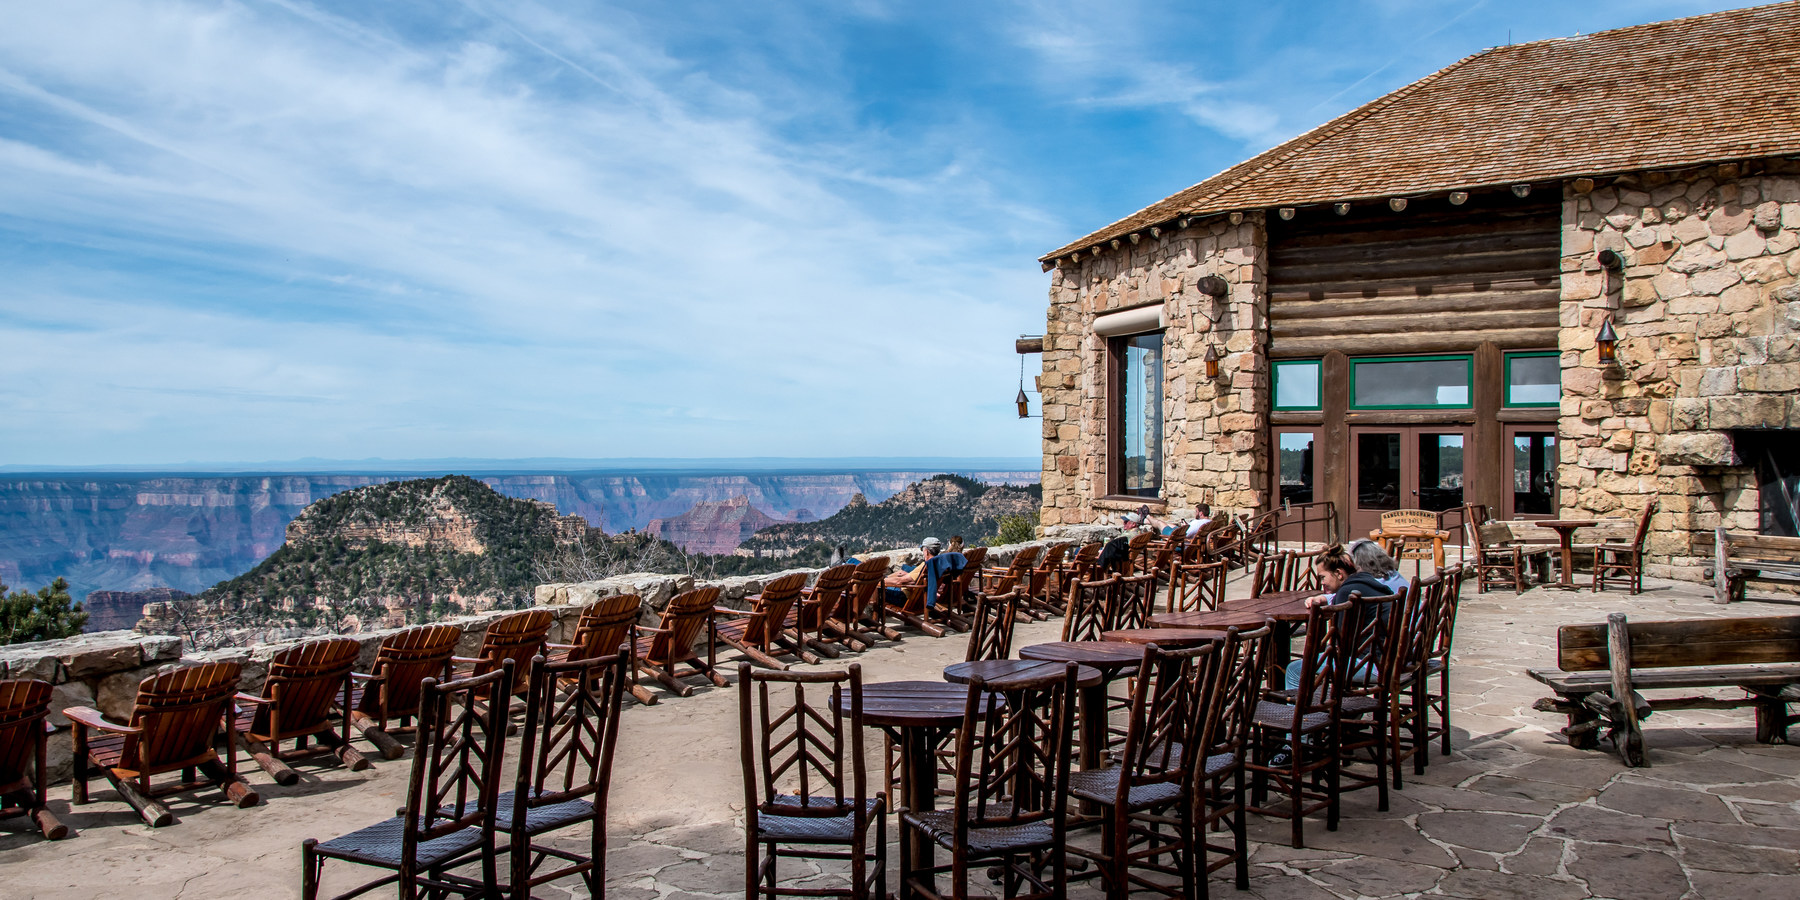 The Lodge at Bryce Canyon offers a variety of food options, from fine dining to groceries to convenience-style items. We value fresh ingredients, excellent customer service, and exquisite preparation and presentation of all meals.